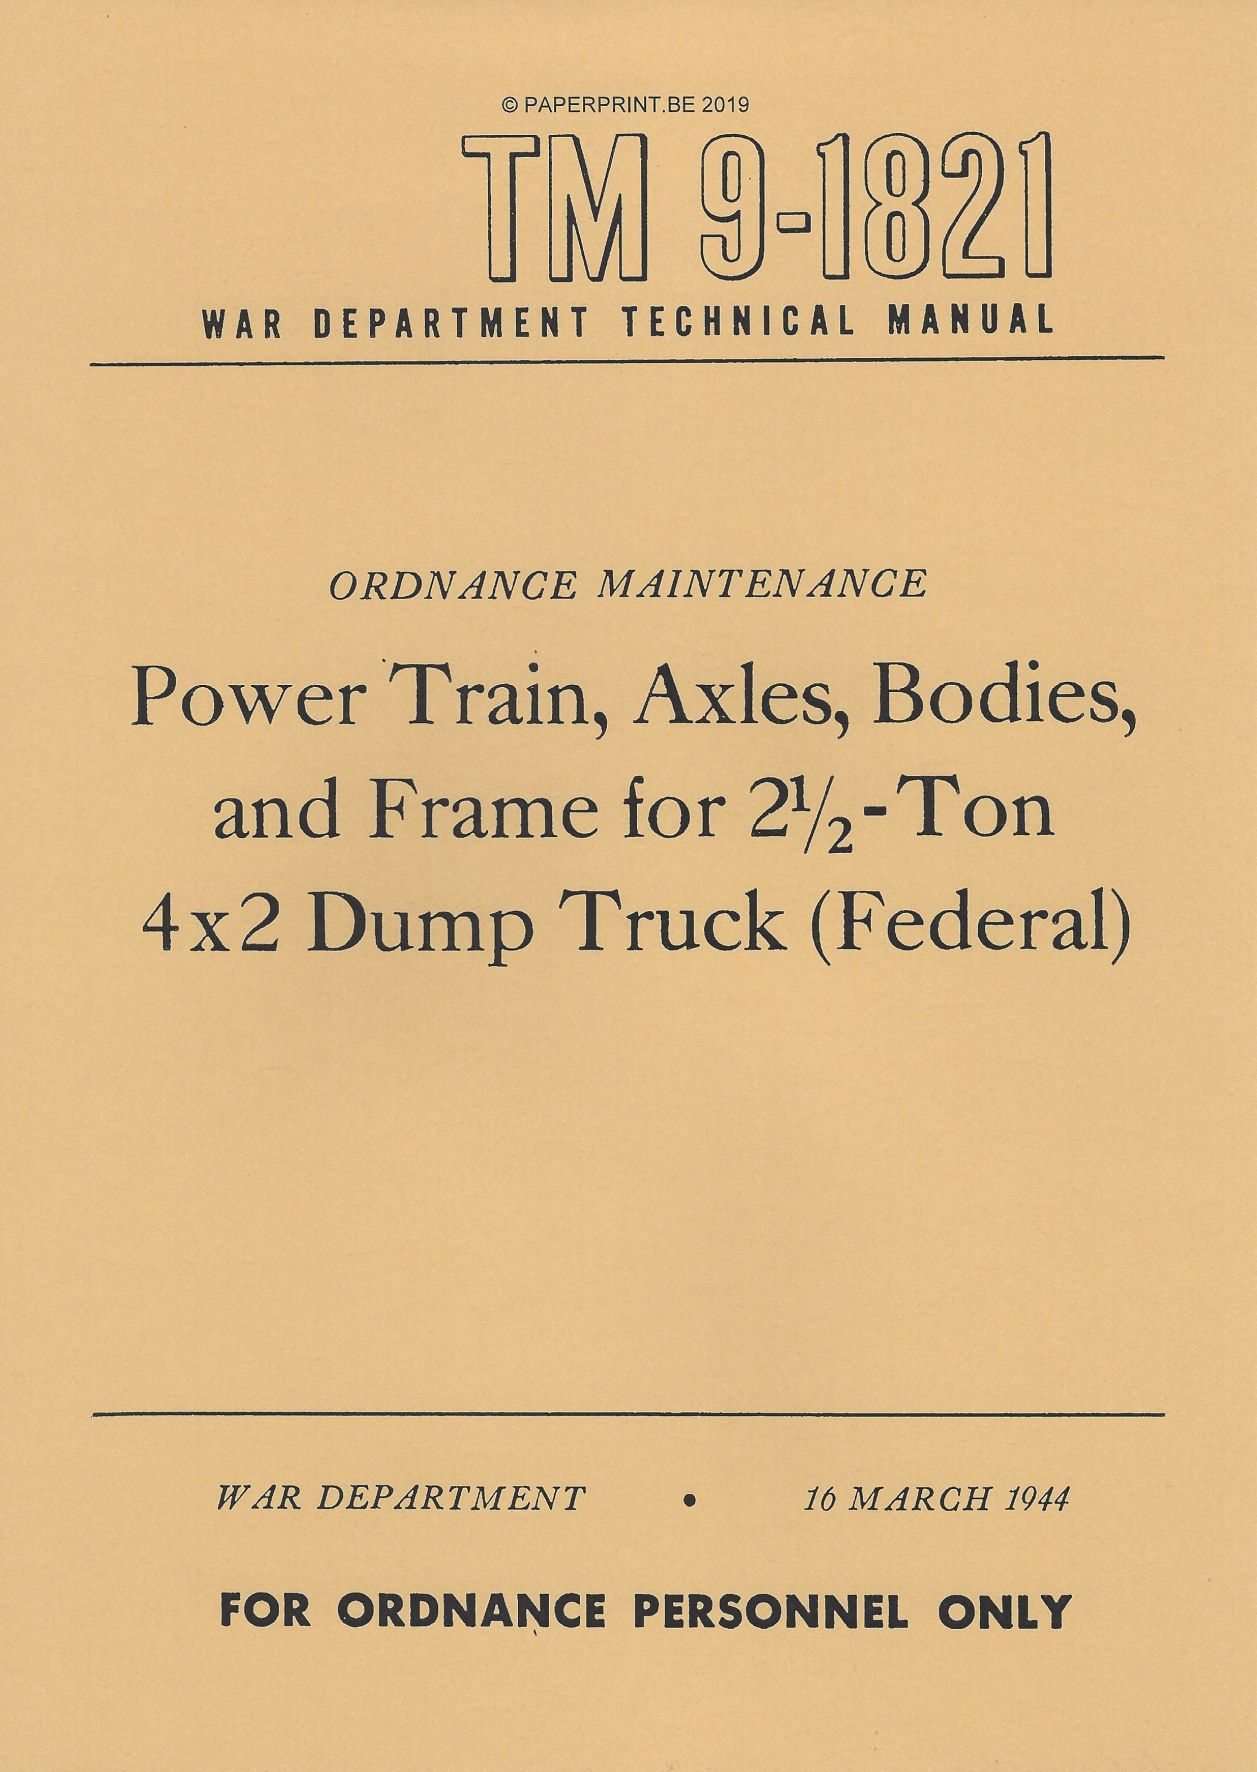 TM 9-1821 POWER TRAIN, AXLES, BODIES AND FRAME FOR FEDERAL 2 ½ TON 4x2 DUMP TRUCK